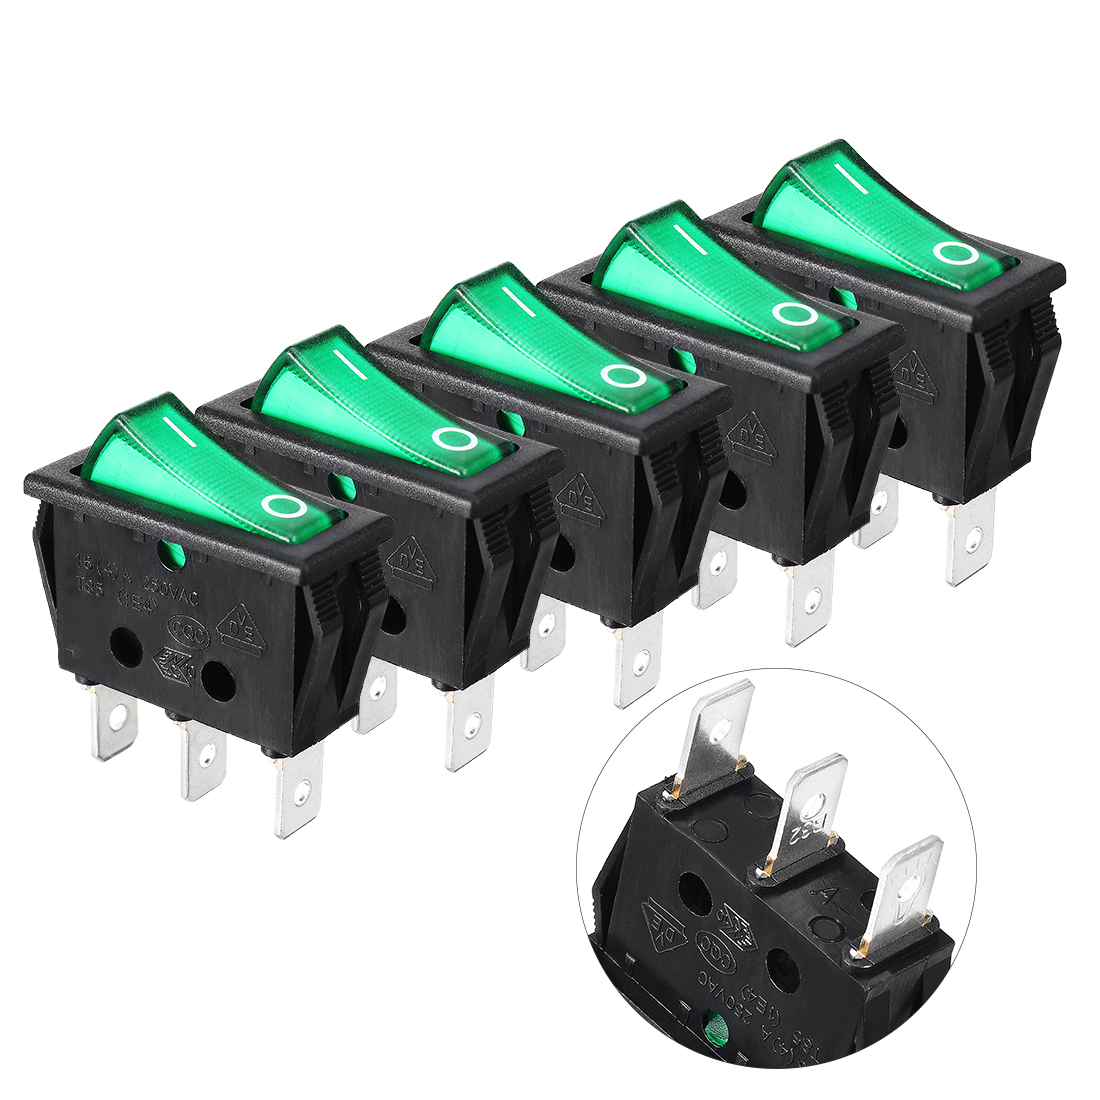 AC 16A/250V Green Light ON/OFF SPST Boat Rocker Switch 5pcs